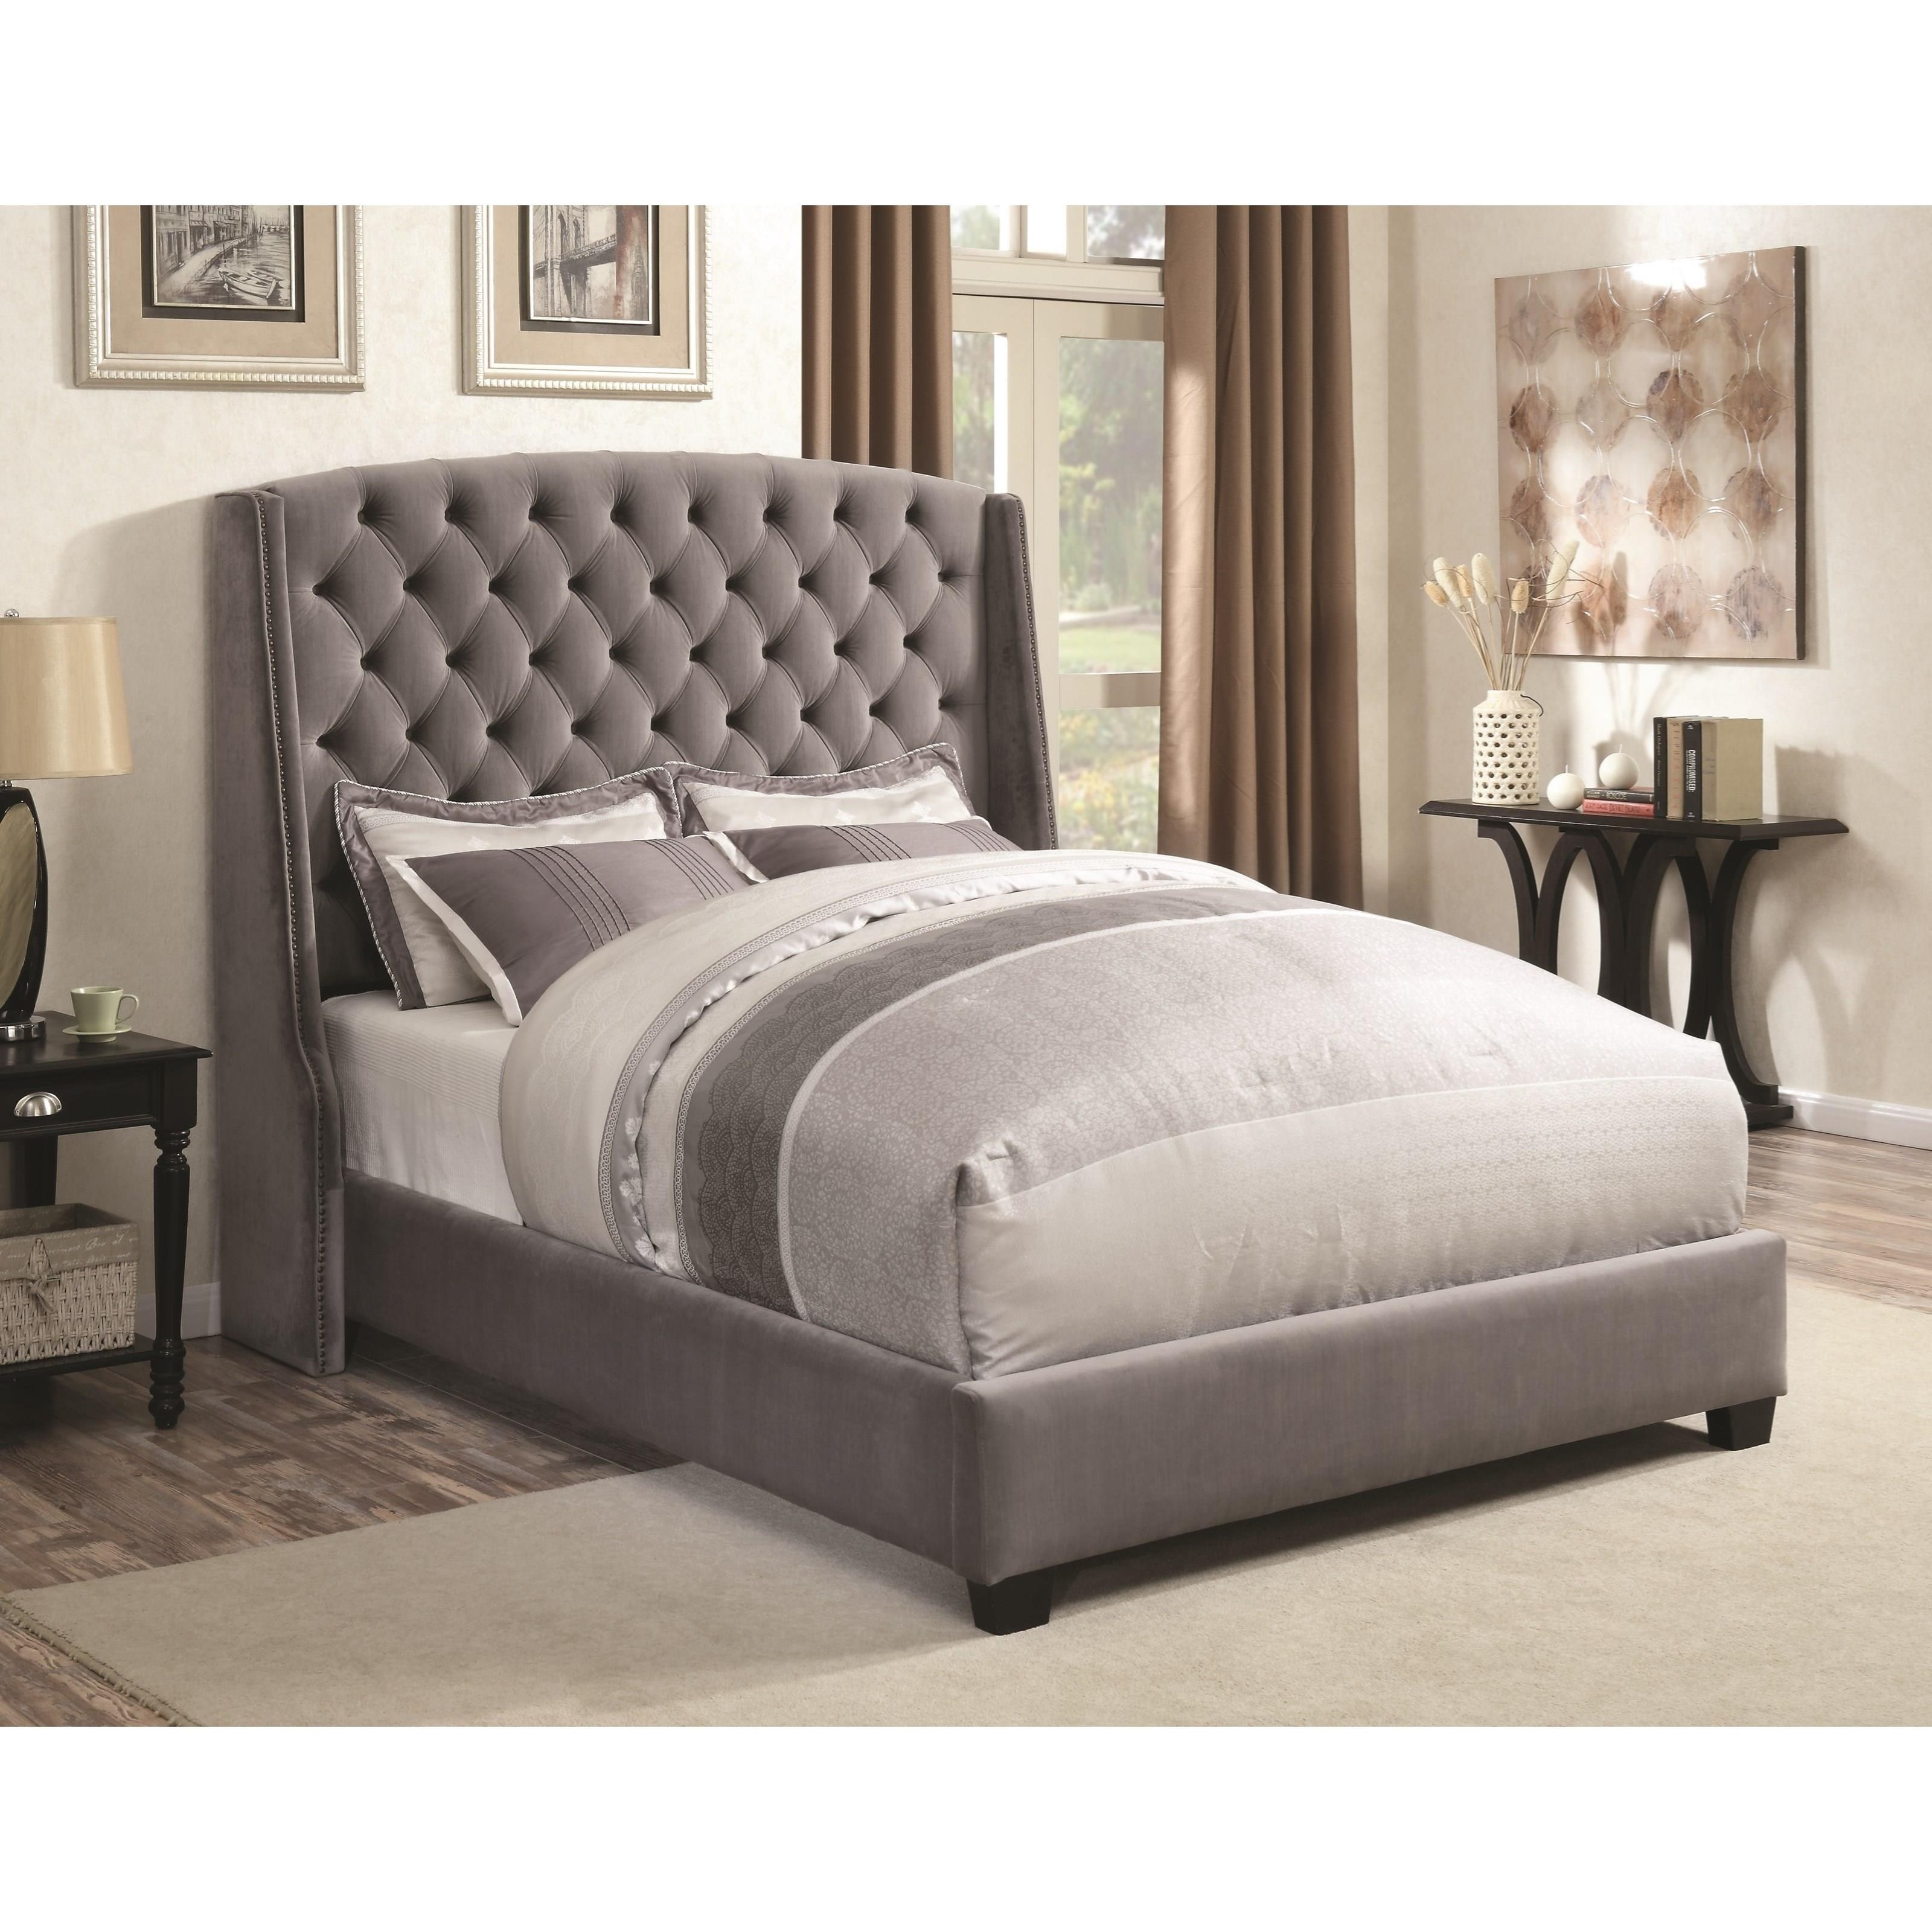 coaster upholstered beds wingback upholstered queen bed coaster fine furniture - Upholstered Queen Bed